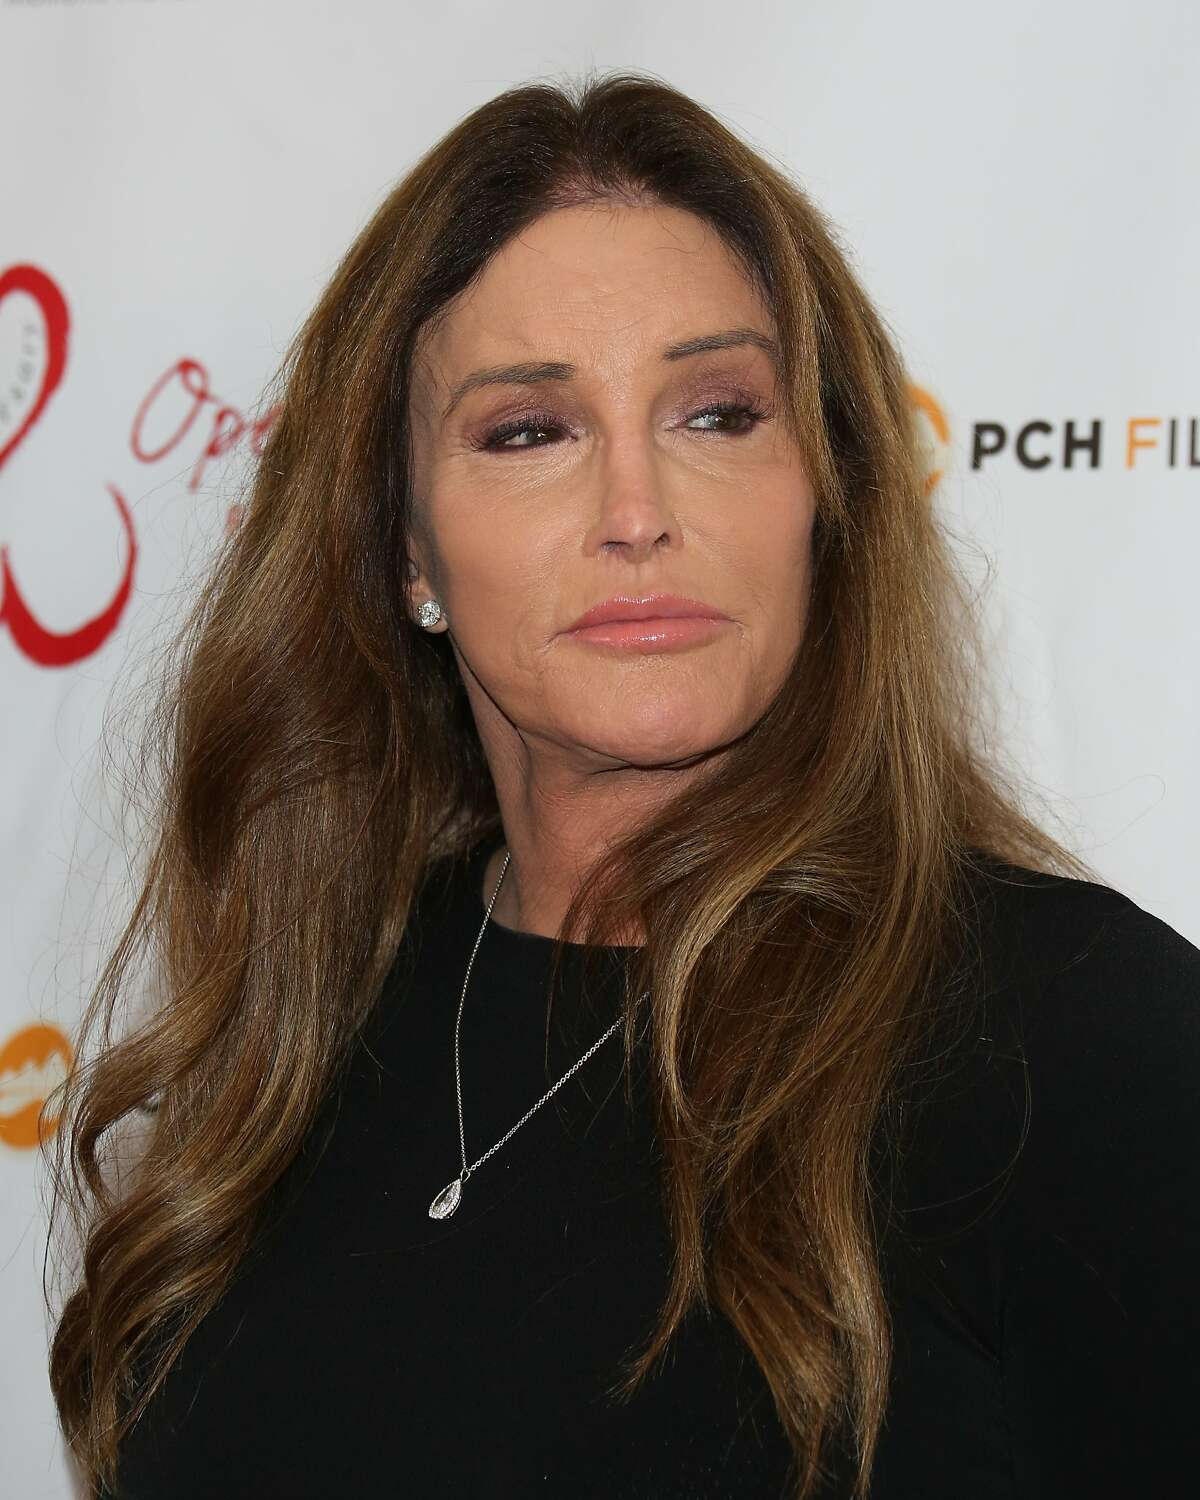 Caitlyn Jenner has remained silent on whether she plans to challenge Gavin Newsom for governor of California.